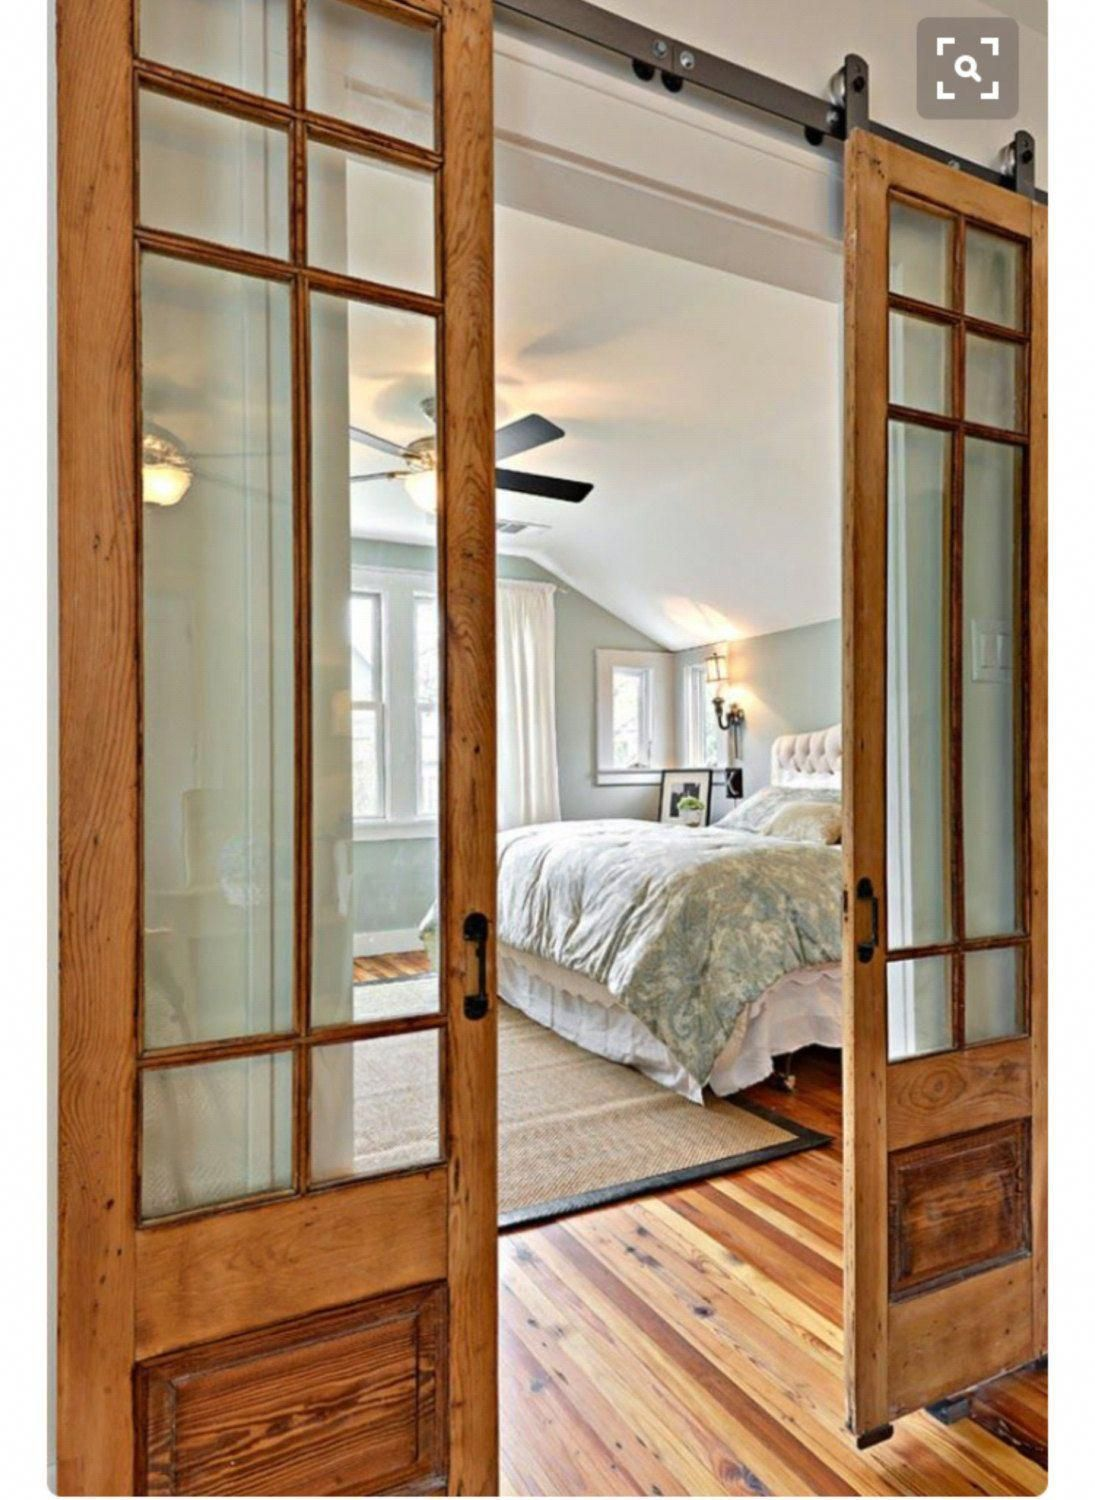 Interior Barn Doors For Sale Barn Door Track And Rollers Rustic Indoor Barn Doors 20190724 Glass Barn Doors French Doors Interior Barn Doors Sliding